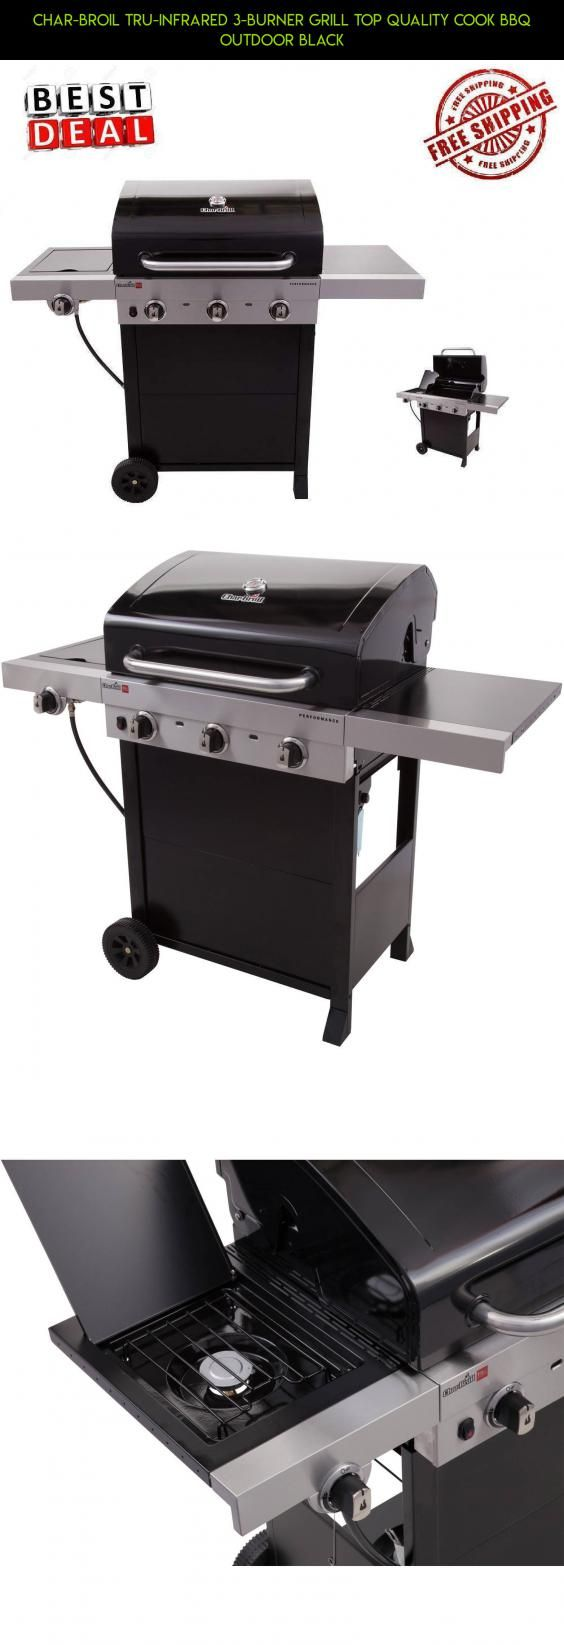 Char-Broil Tru-Infrared 3-Burner Grill Top Quality Cook Bbq Outdoor BLACK #technology #gadgets #kit #burner #drone #shopping #fpv #parts #tech #3 #racing #grills #products #camera #plans